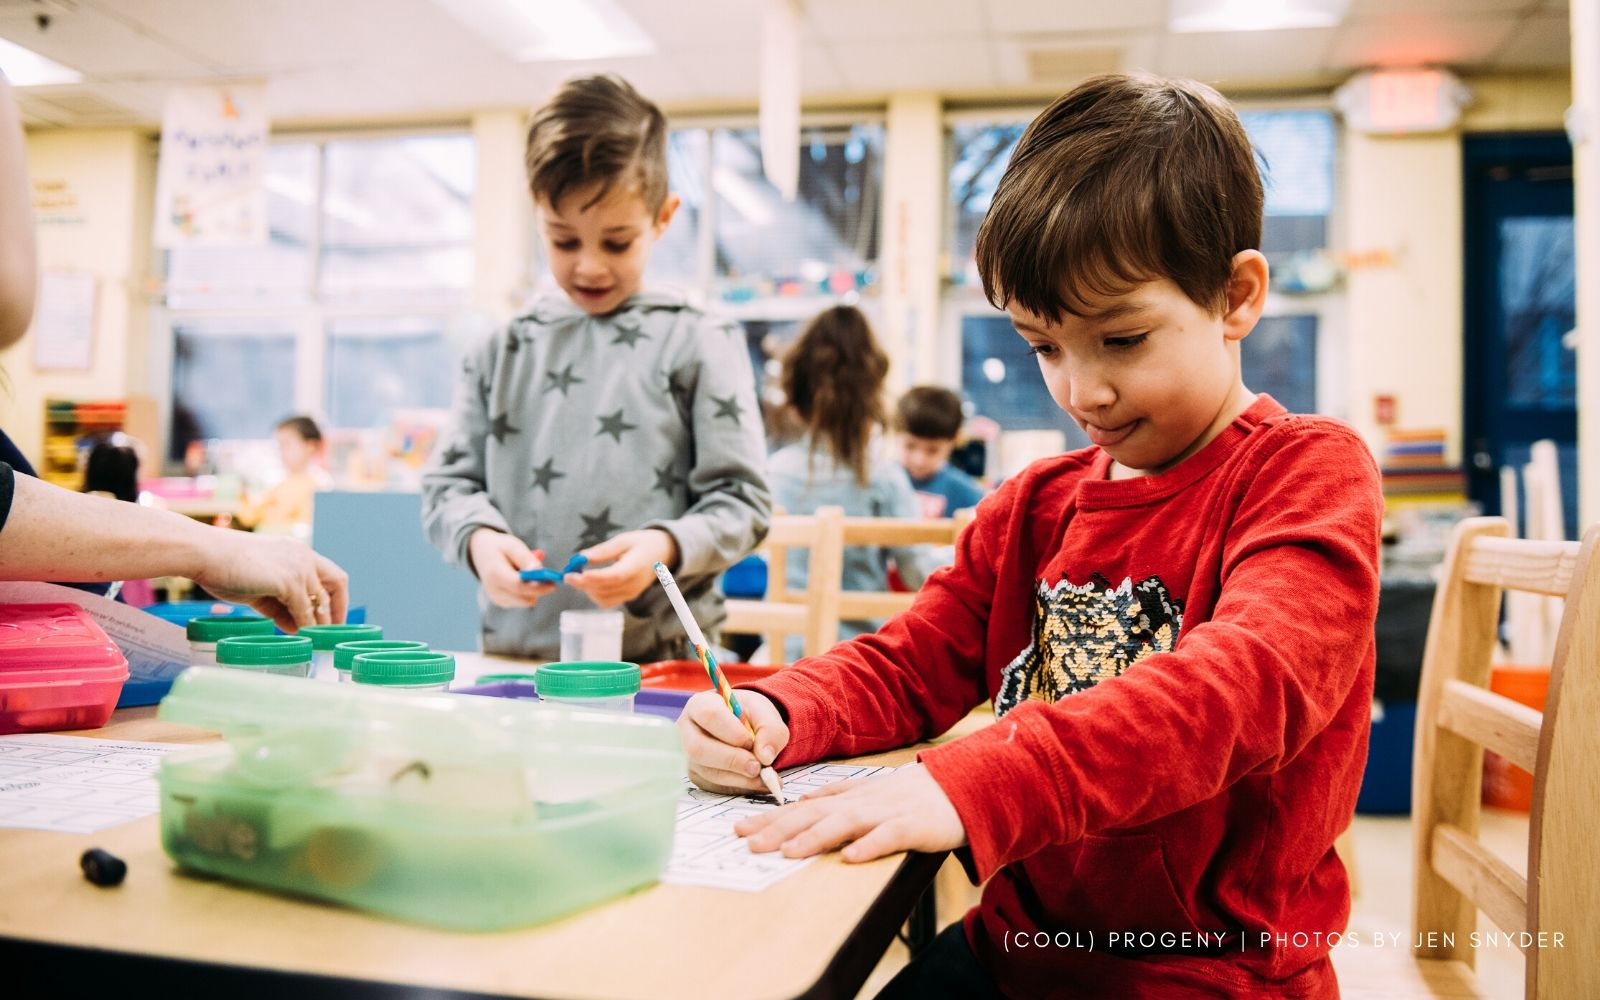 Goldsmith Early Learning Center | Photos by Jen Snyder, (cool) progeny